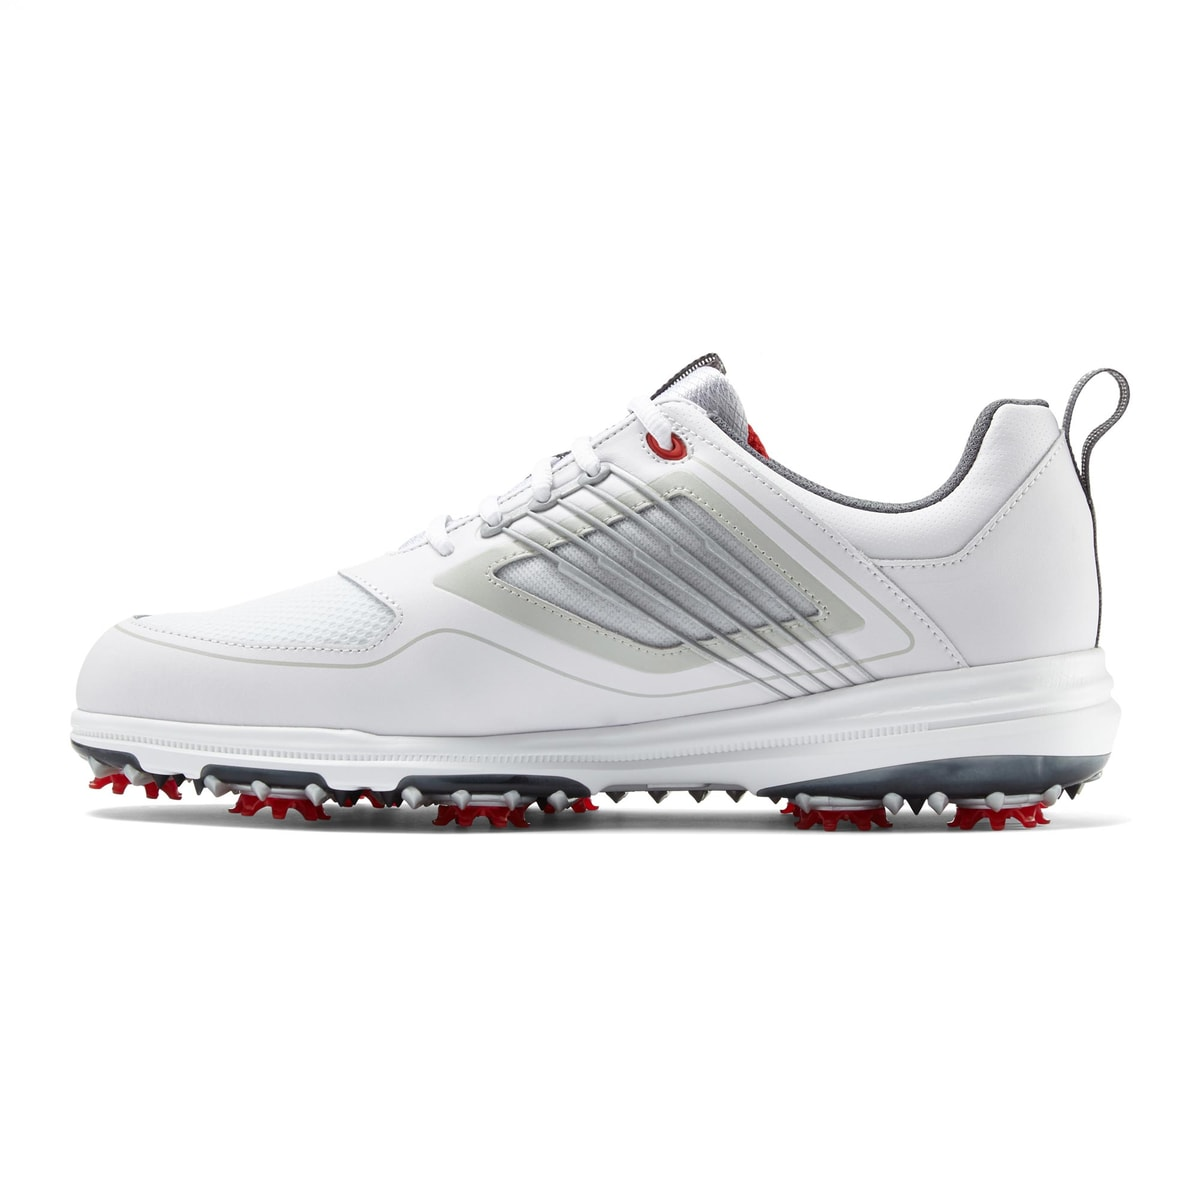 Men S Spiked Golf Shoes Fj Fury Footjoy